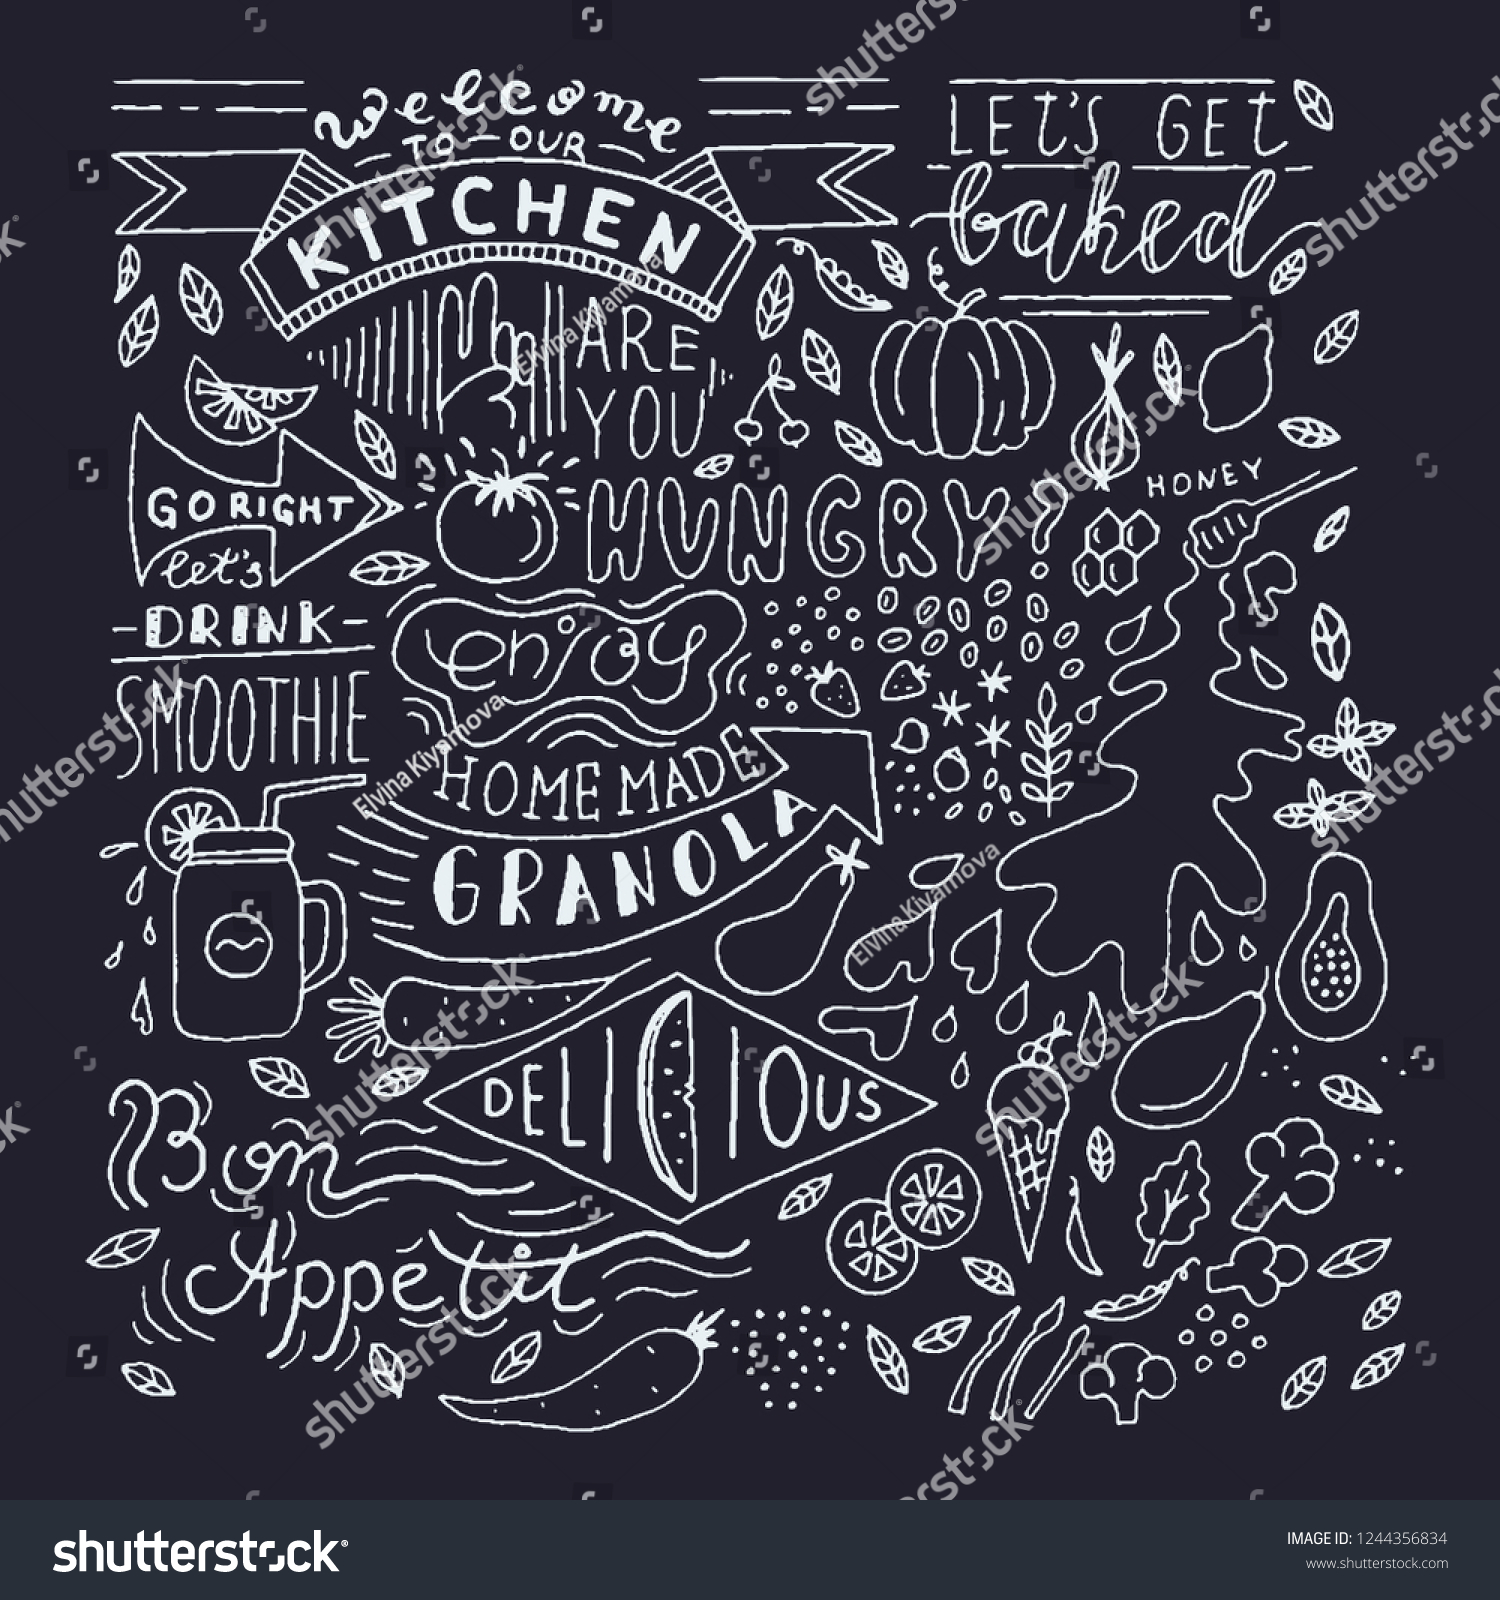 chalkboard kitchen art blackboard lettering wall stock vector